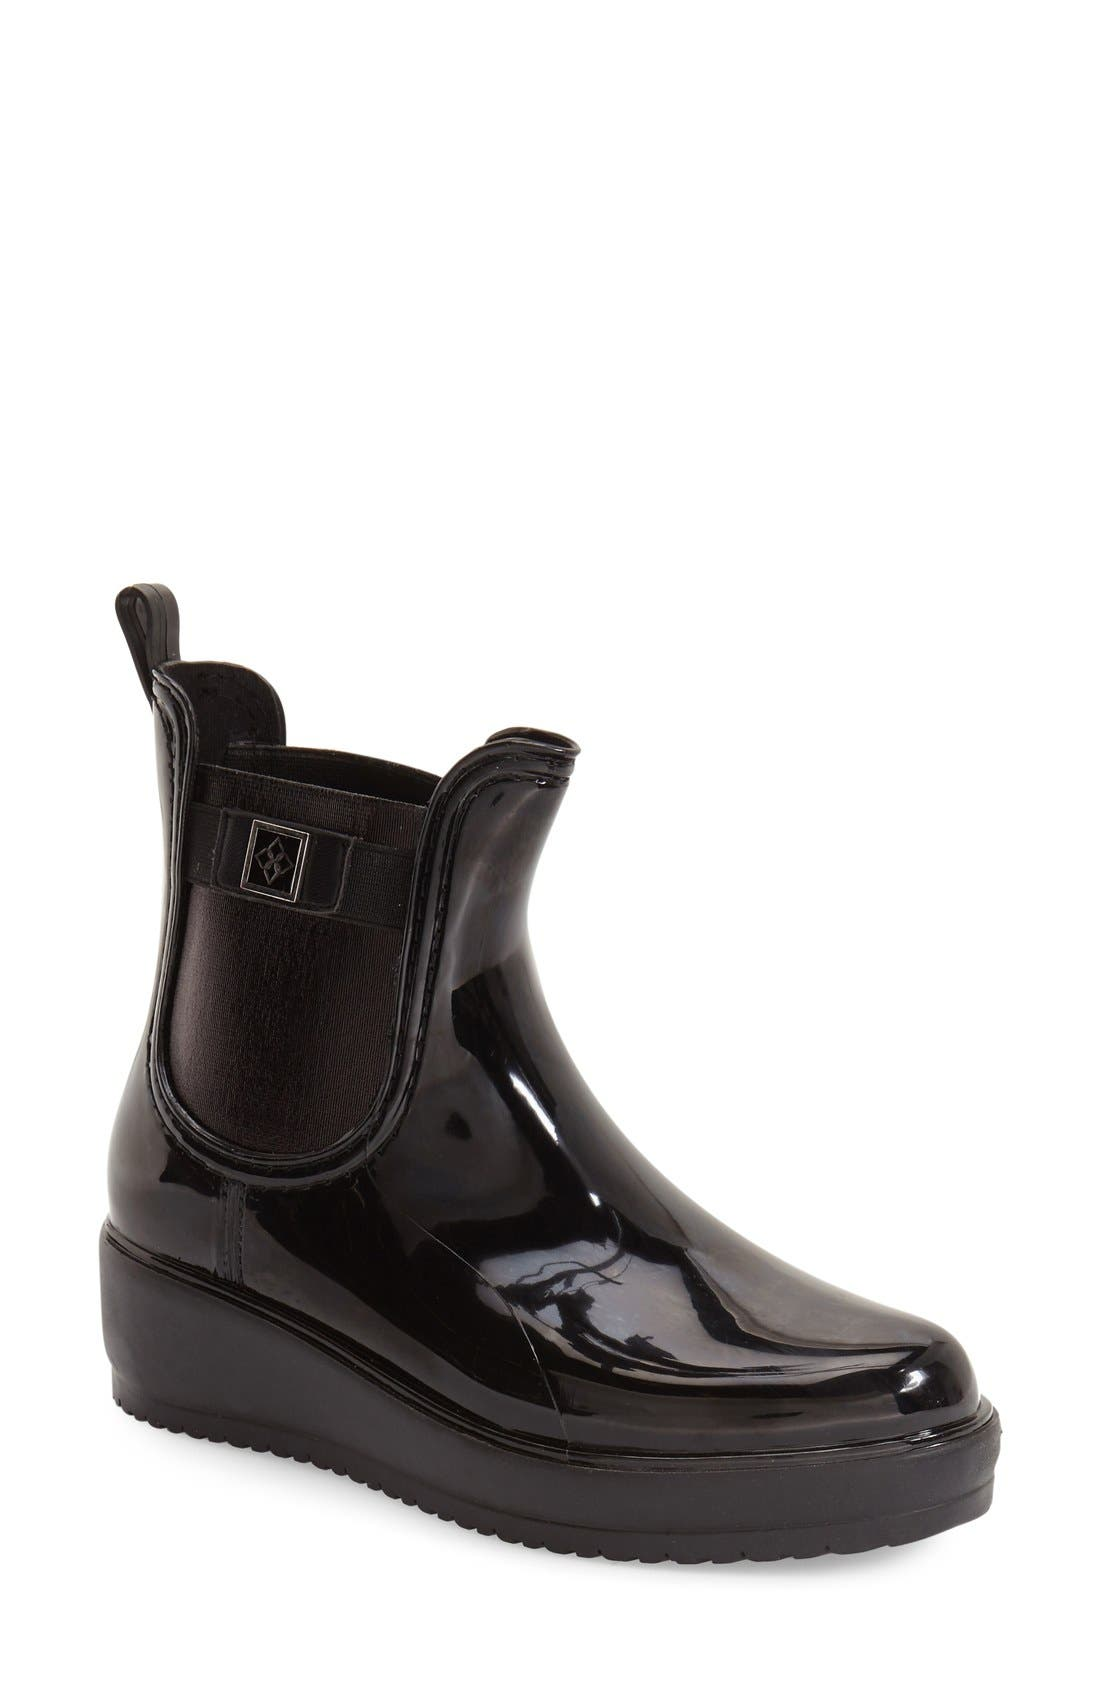 Alternate Image 1 Selected - däv 'Wakefield' Waterproof Platform Rain Chelsea Boot (Women)